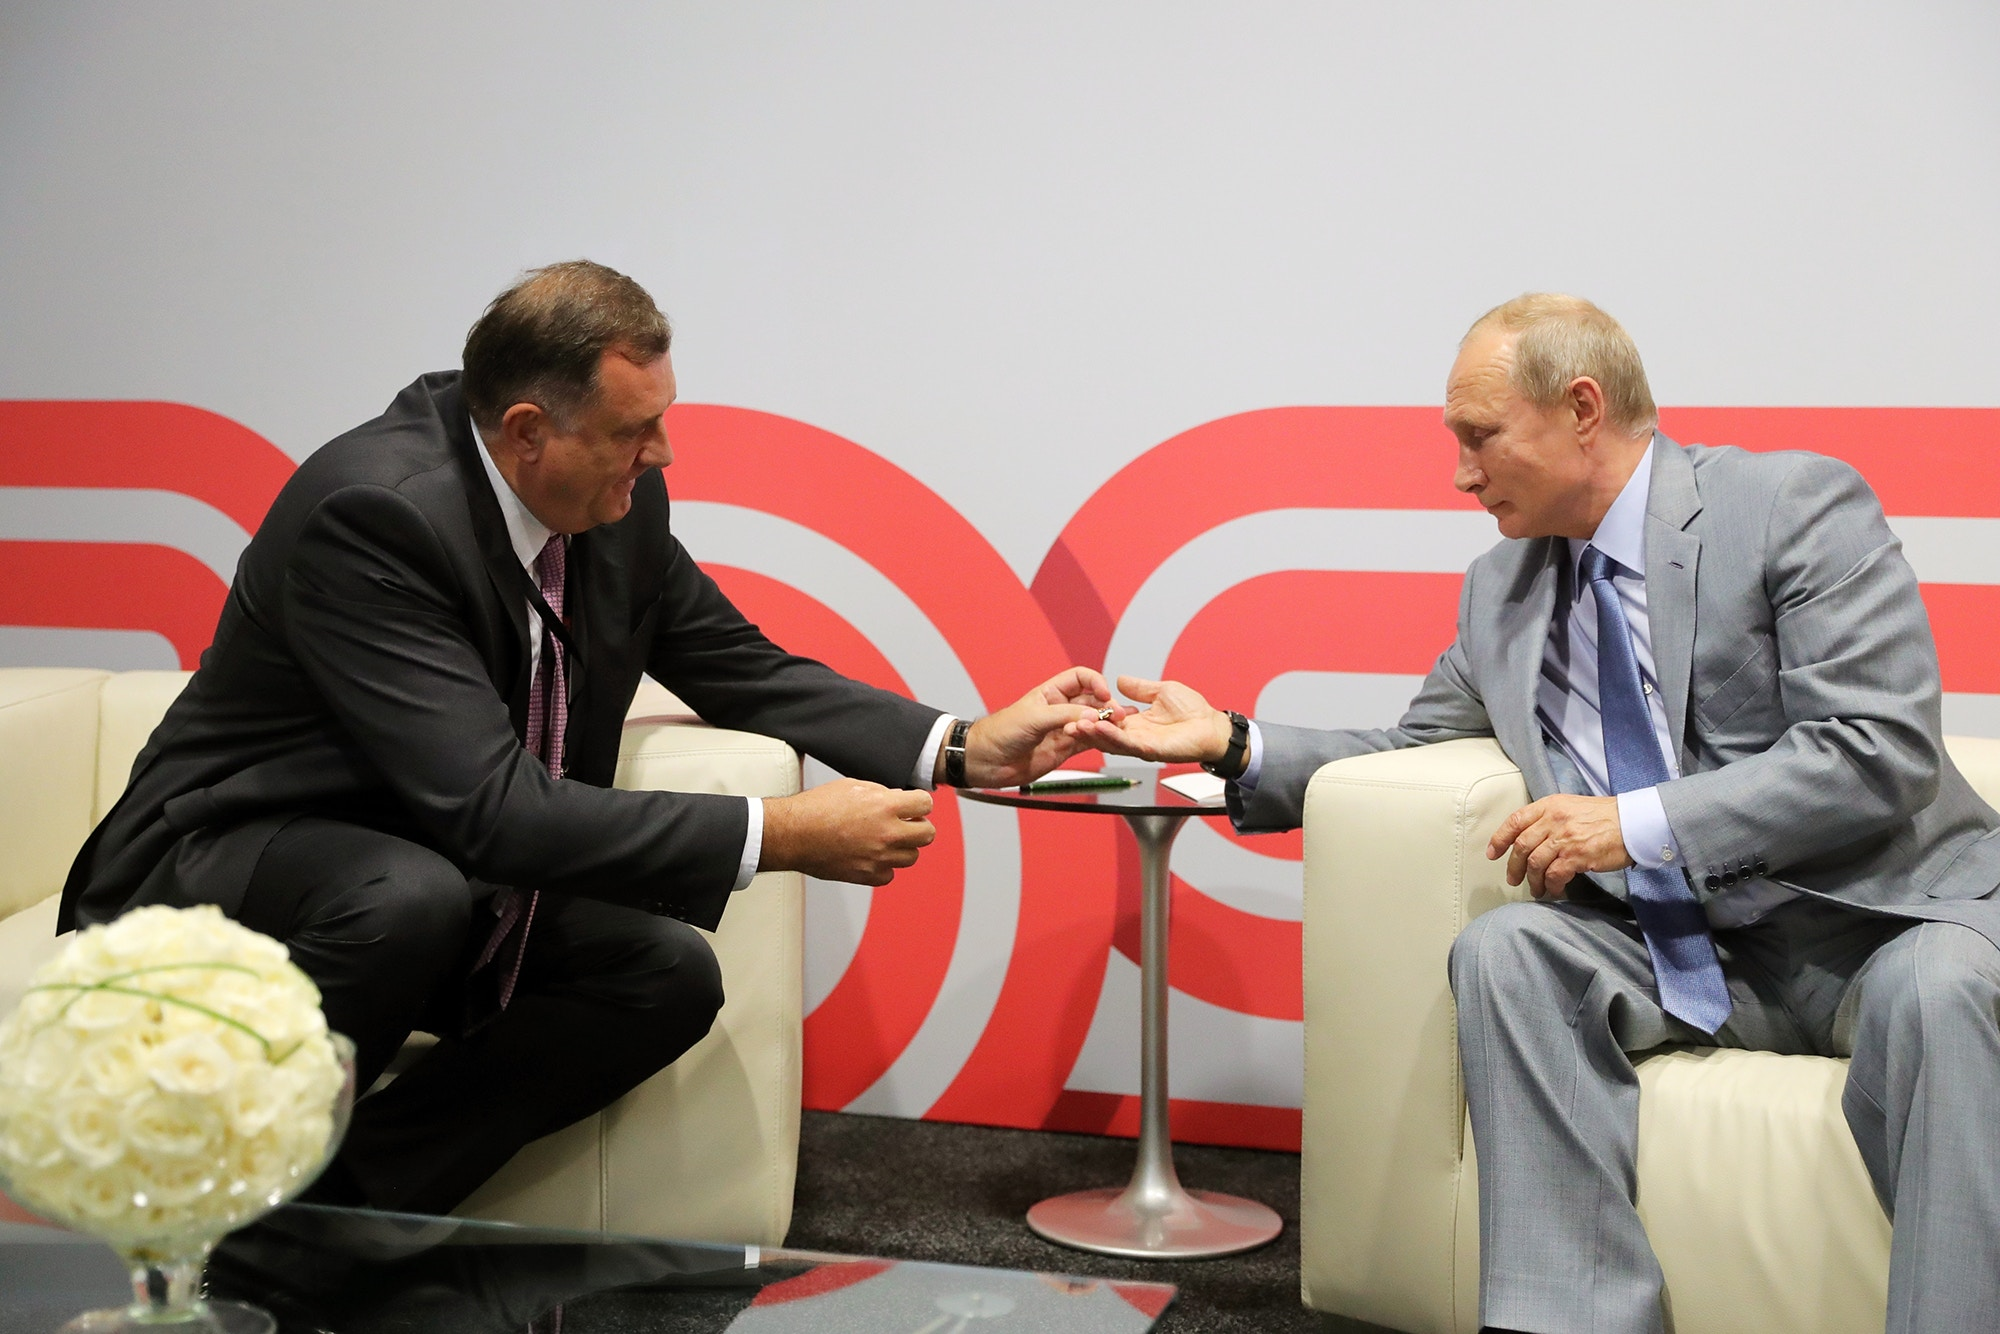 5651852 30.09.2018 September 30, 2018. Russian President Vladimir Putin and President of the Republika Srpska entity of Bosnia and Herzegovina Milorad Dodik, left, during their meeting at Sochi Autodrom. Mikhael Klimentyev / Sputnik  via AP